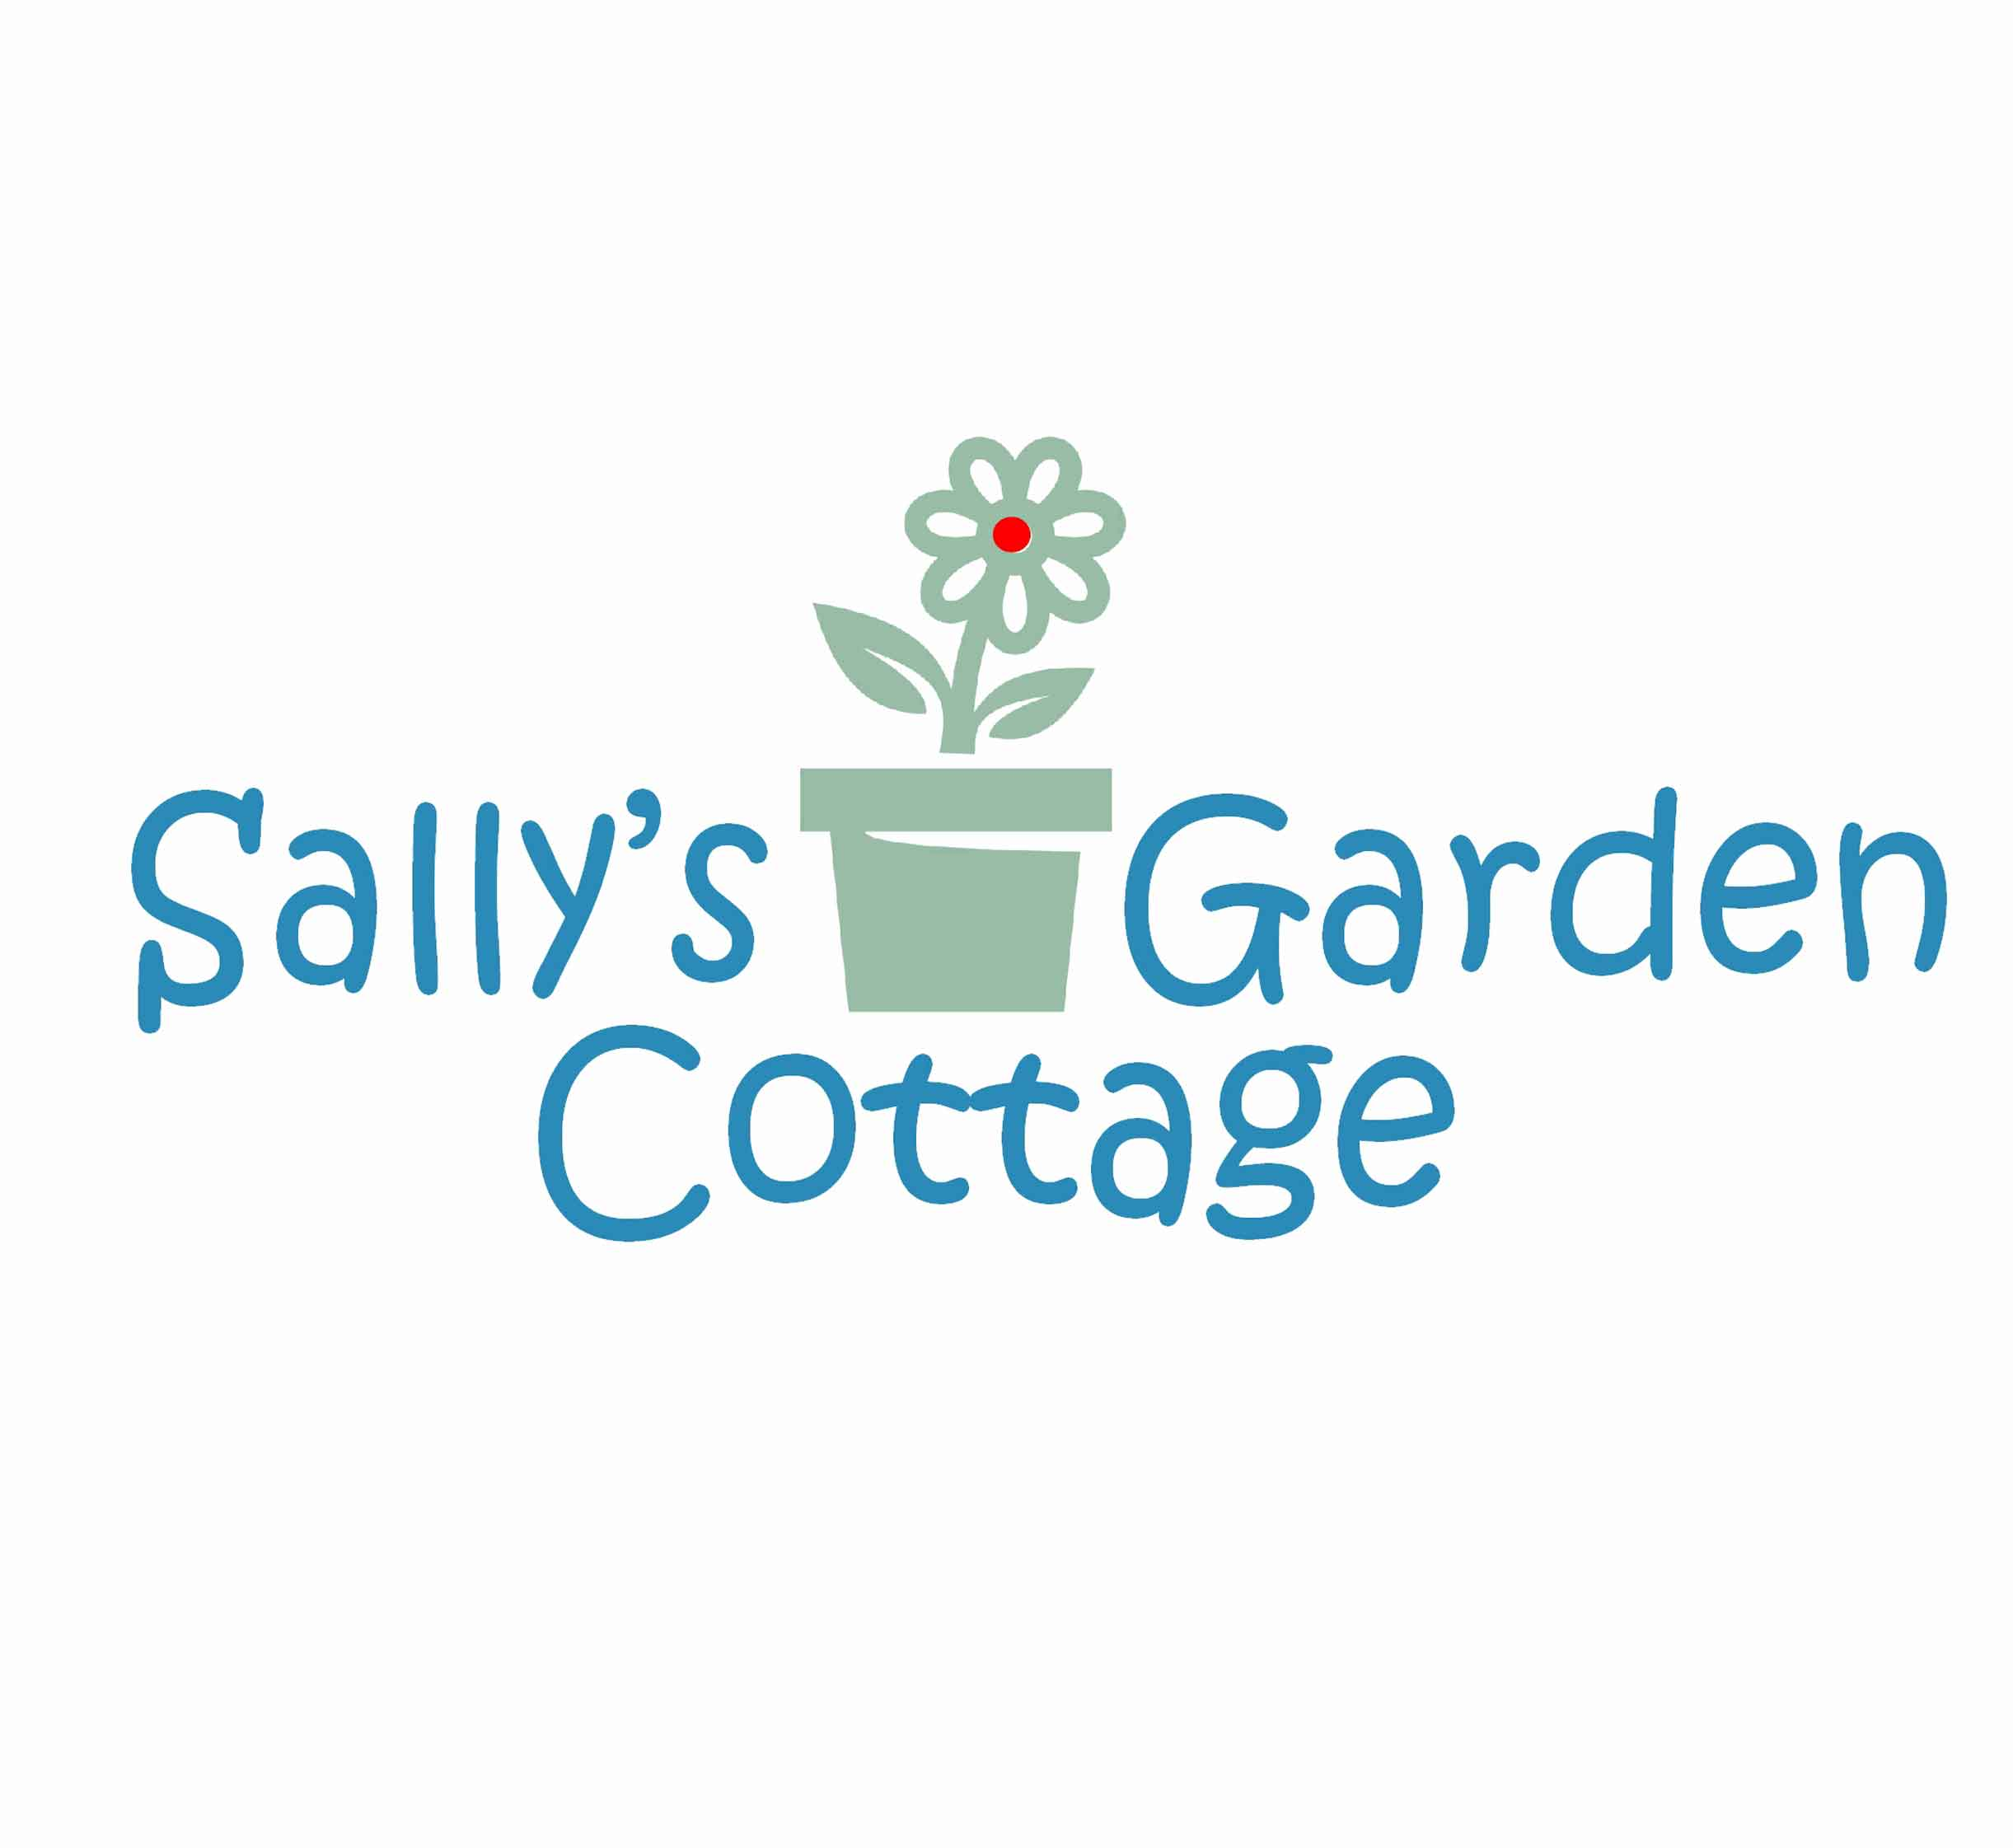 Sally's Garden Cottage, logo by New Paradigm graphic design, Santa Rosa, CA